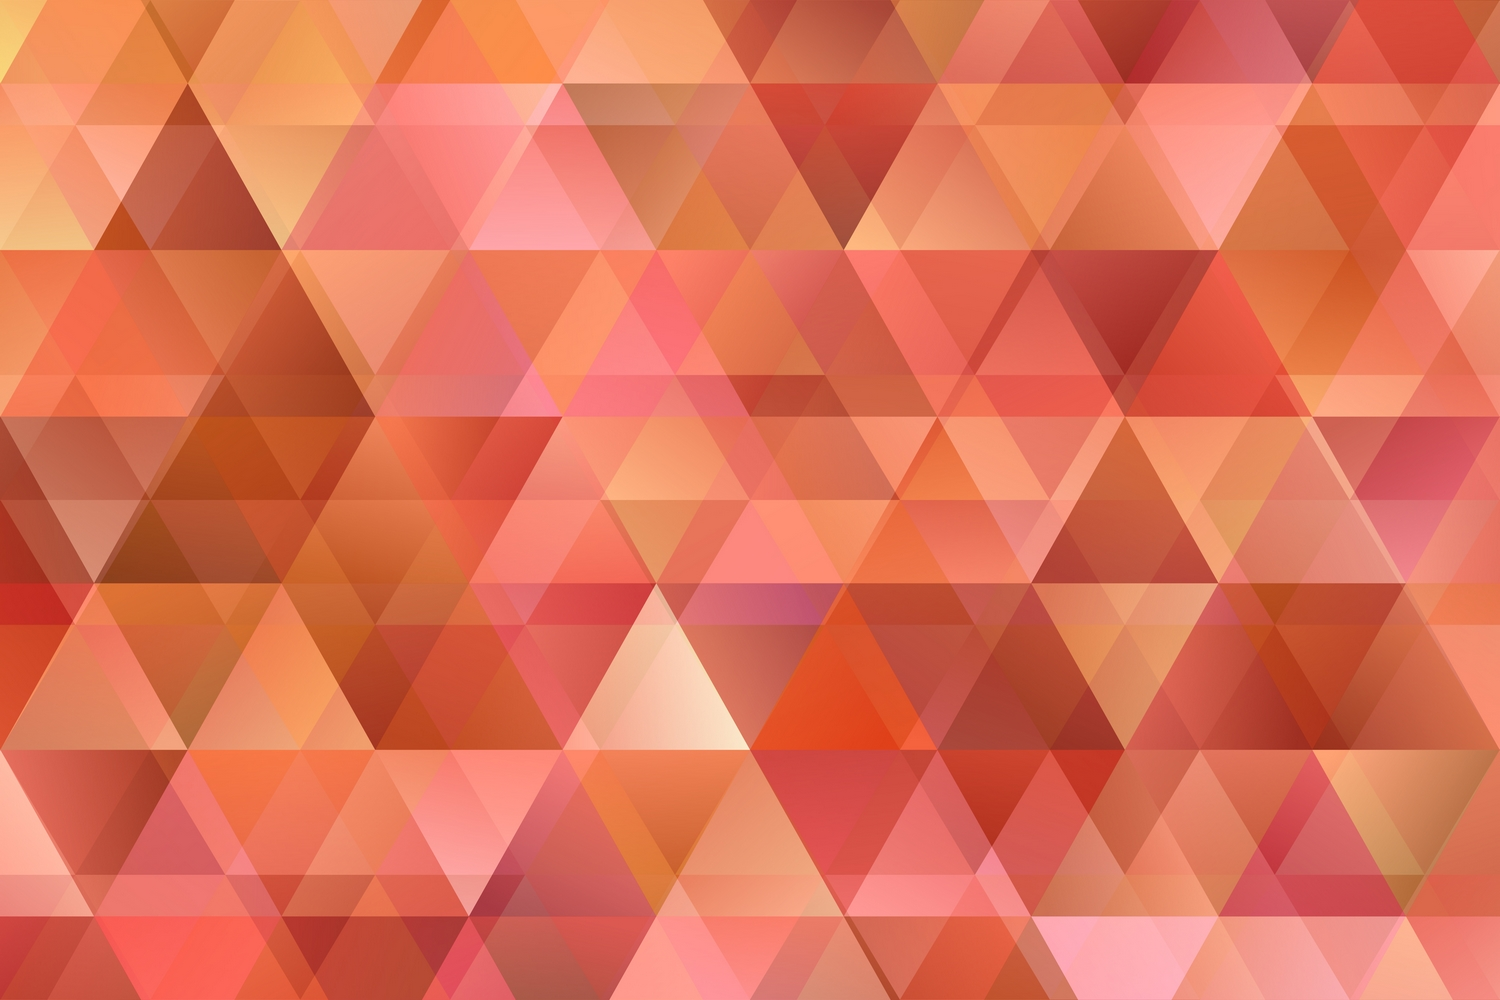 24 Gradient Polygon Backgrounds AI, EPS, JPG 5000x5000 example image 6